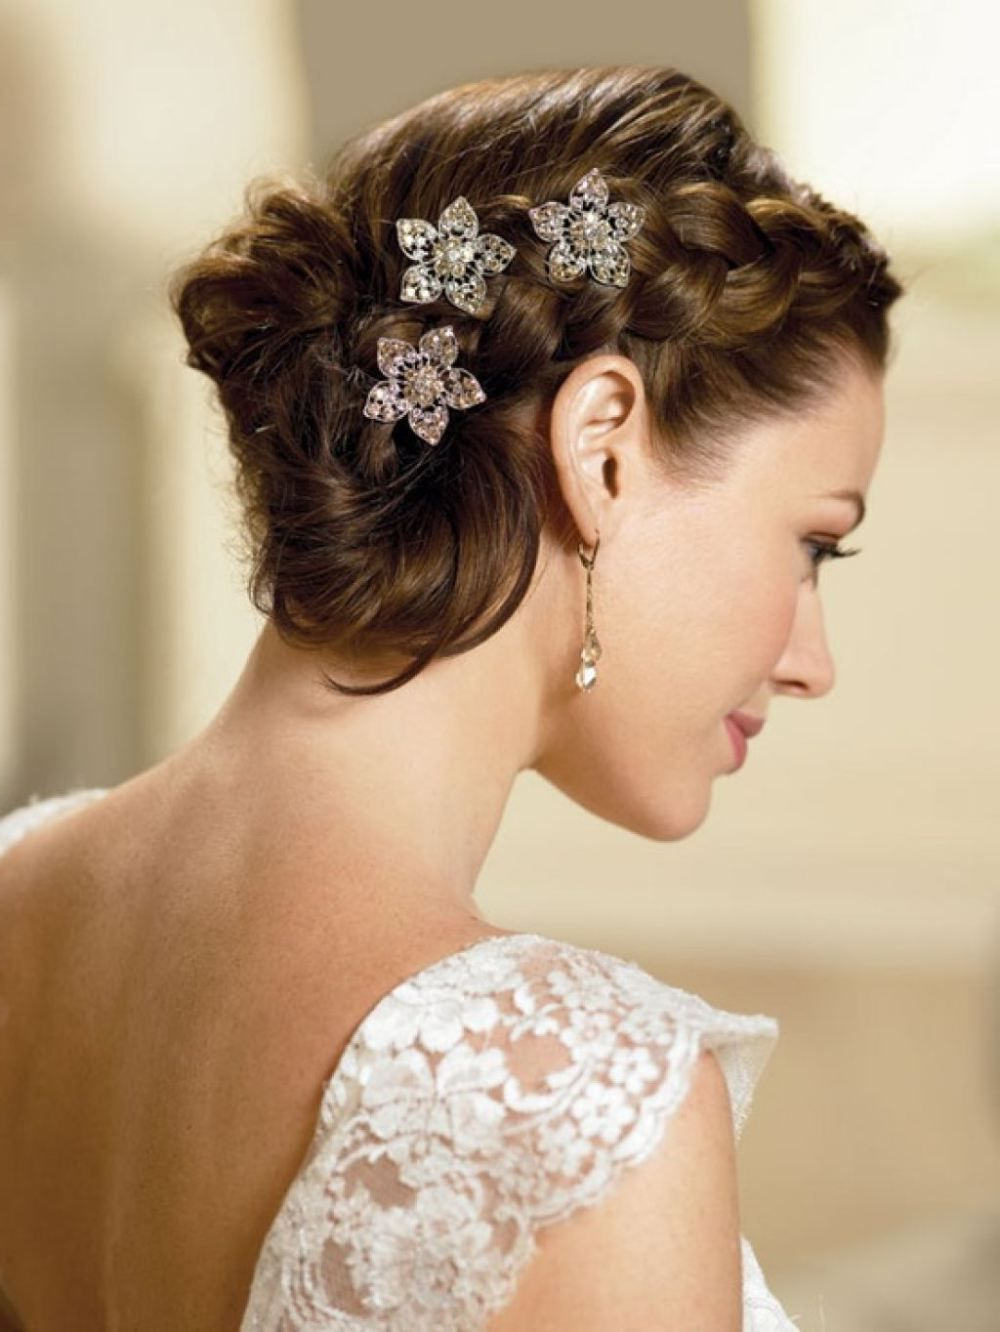 40 Chic Wedding Hair Updos For Elegant Brides (Gallery 16 of 20)